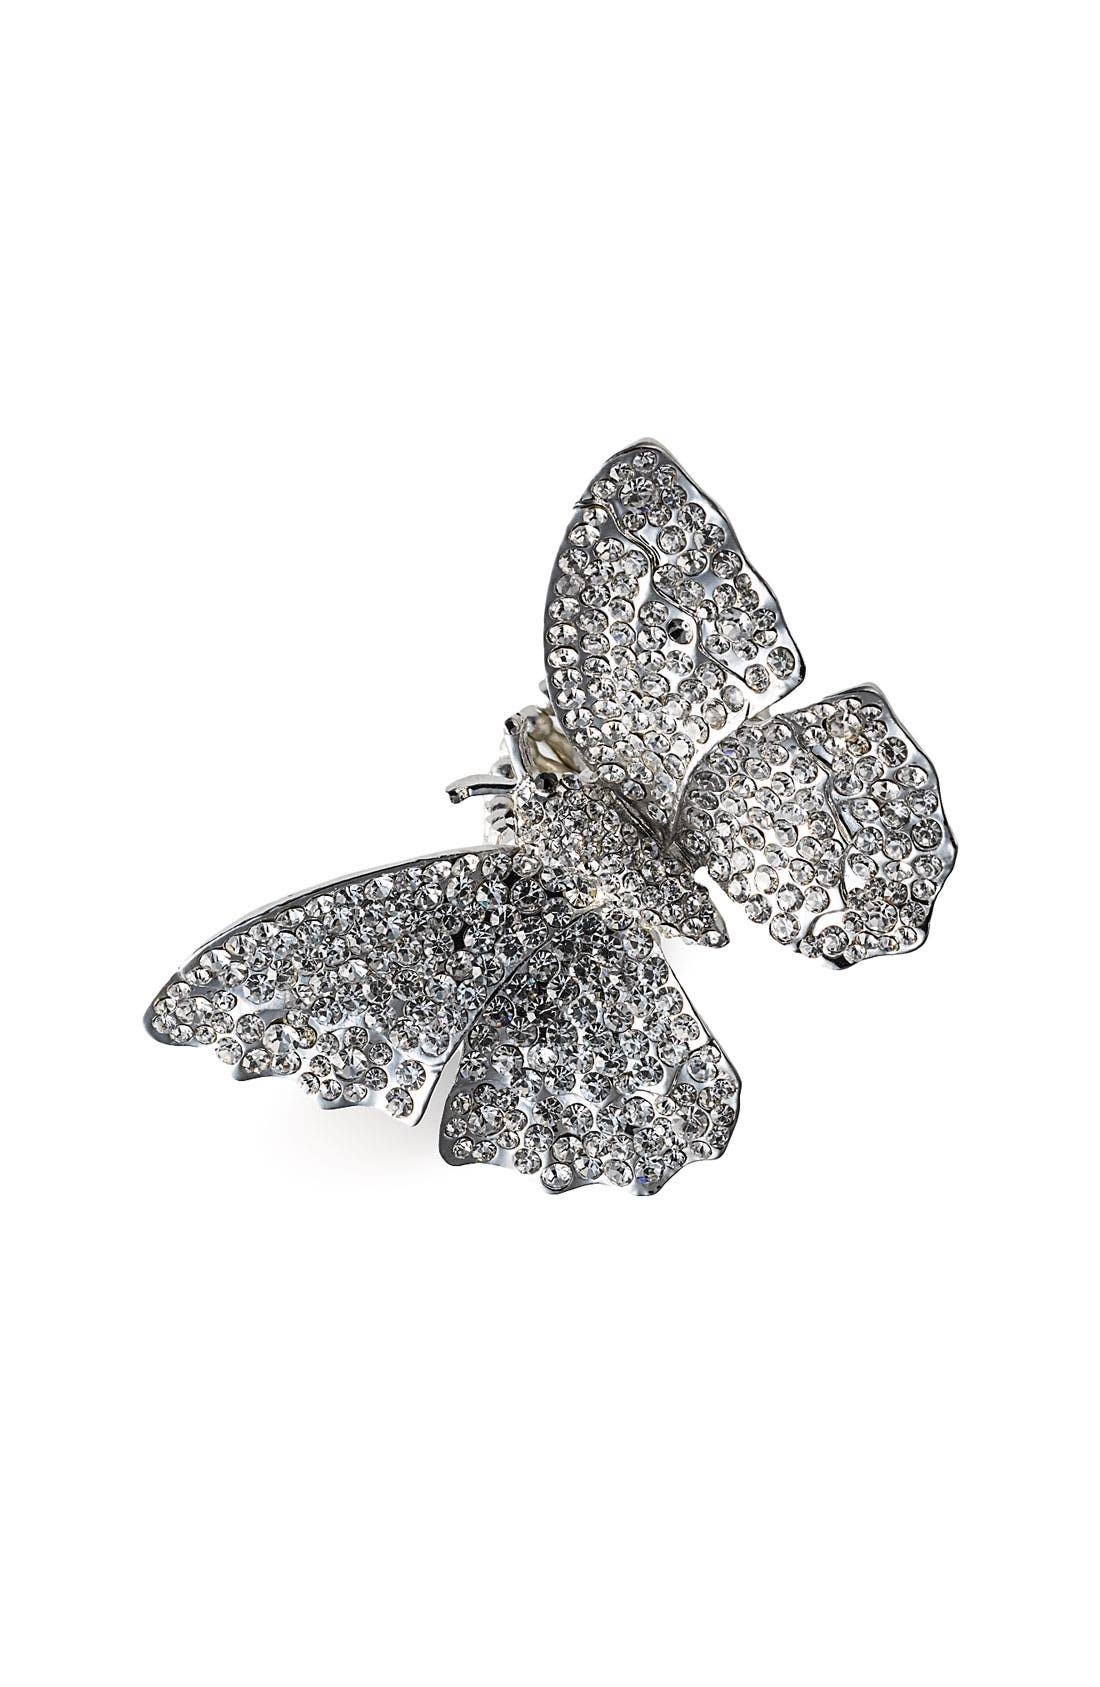 Accessories 'Critters' Butterfly Crystal Stretch Ring,                             Main thumbnail 1, color,                             040